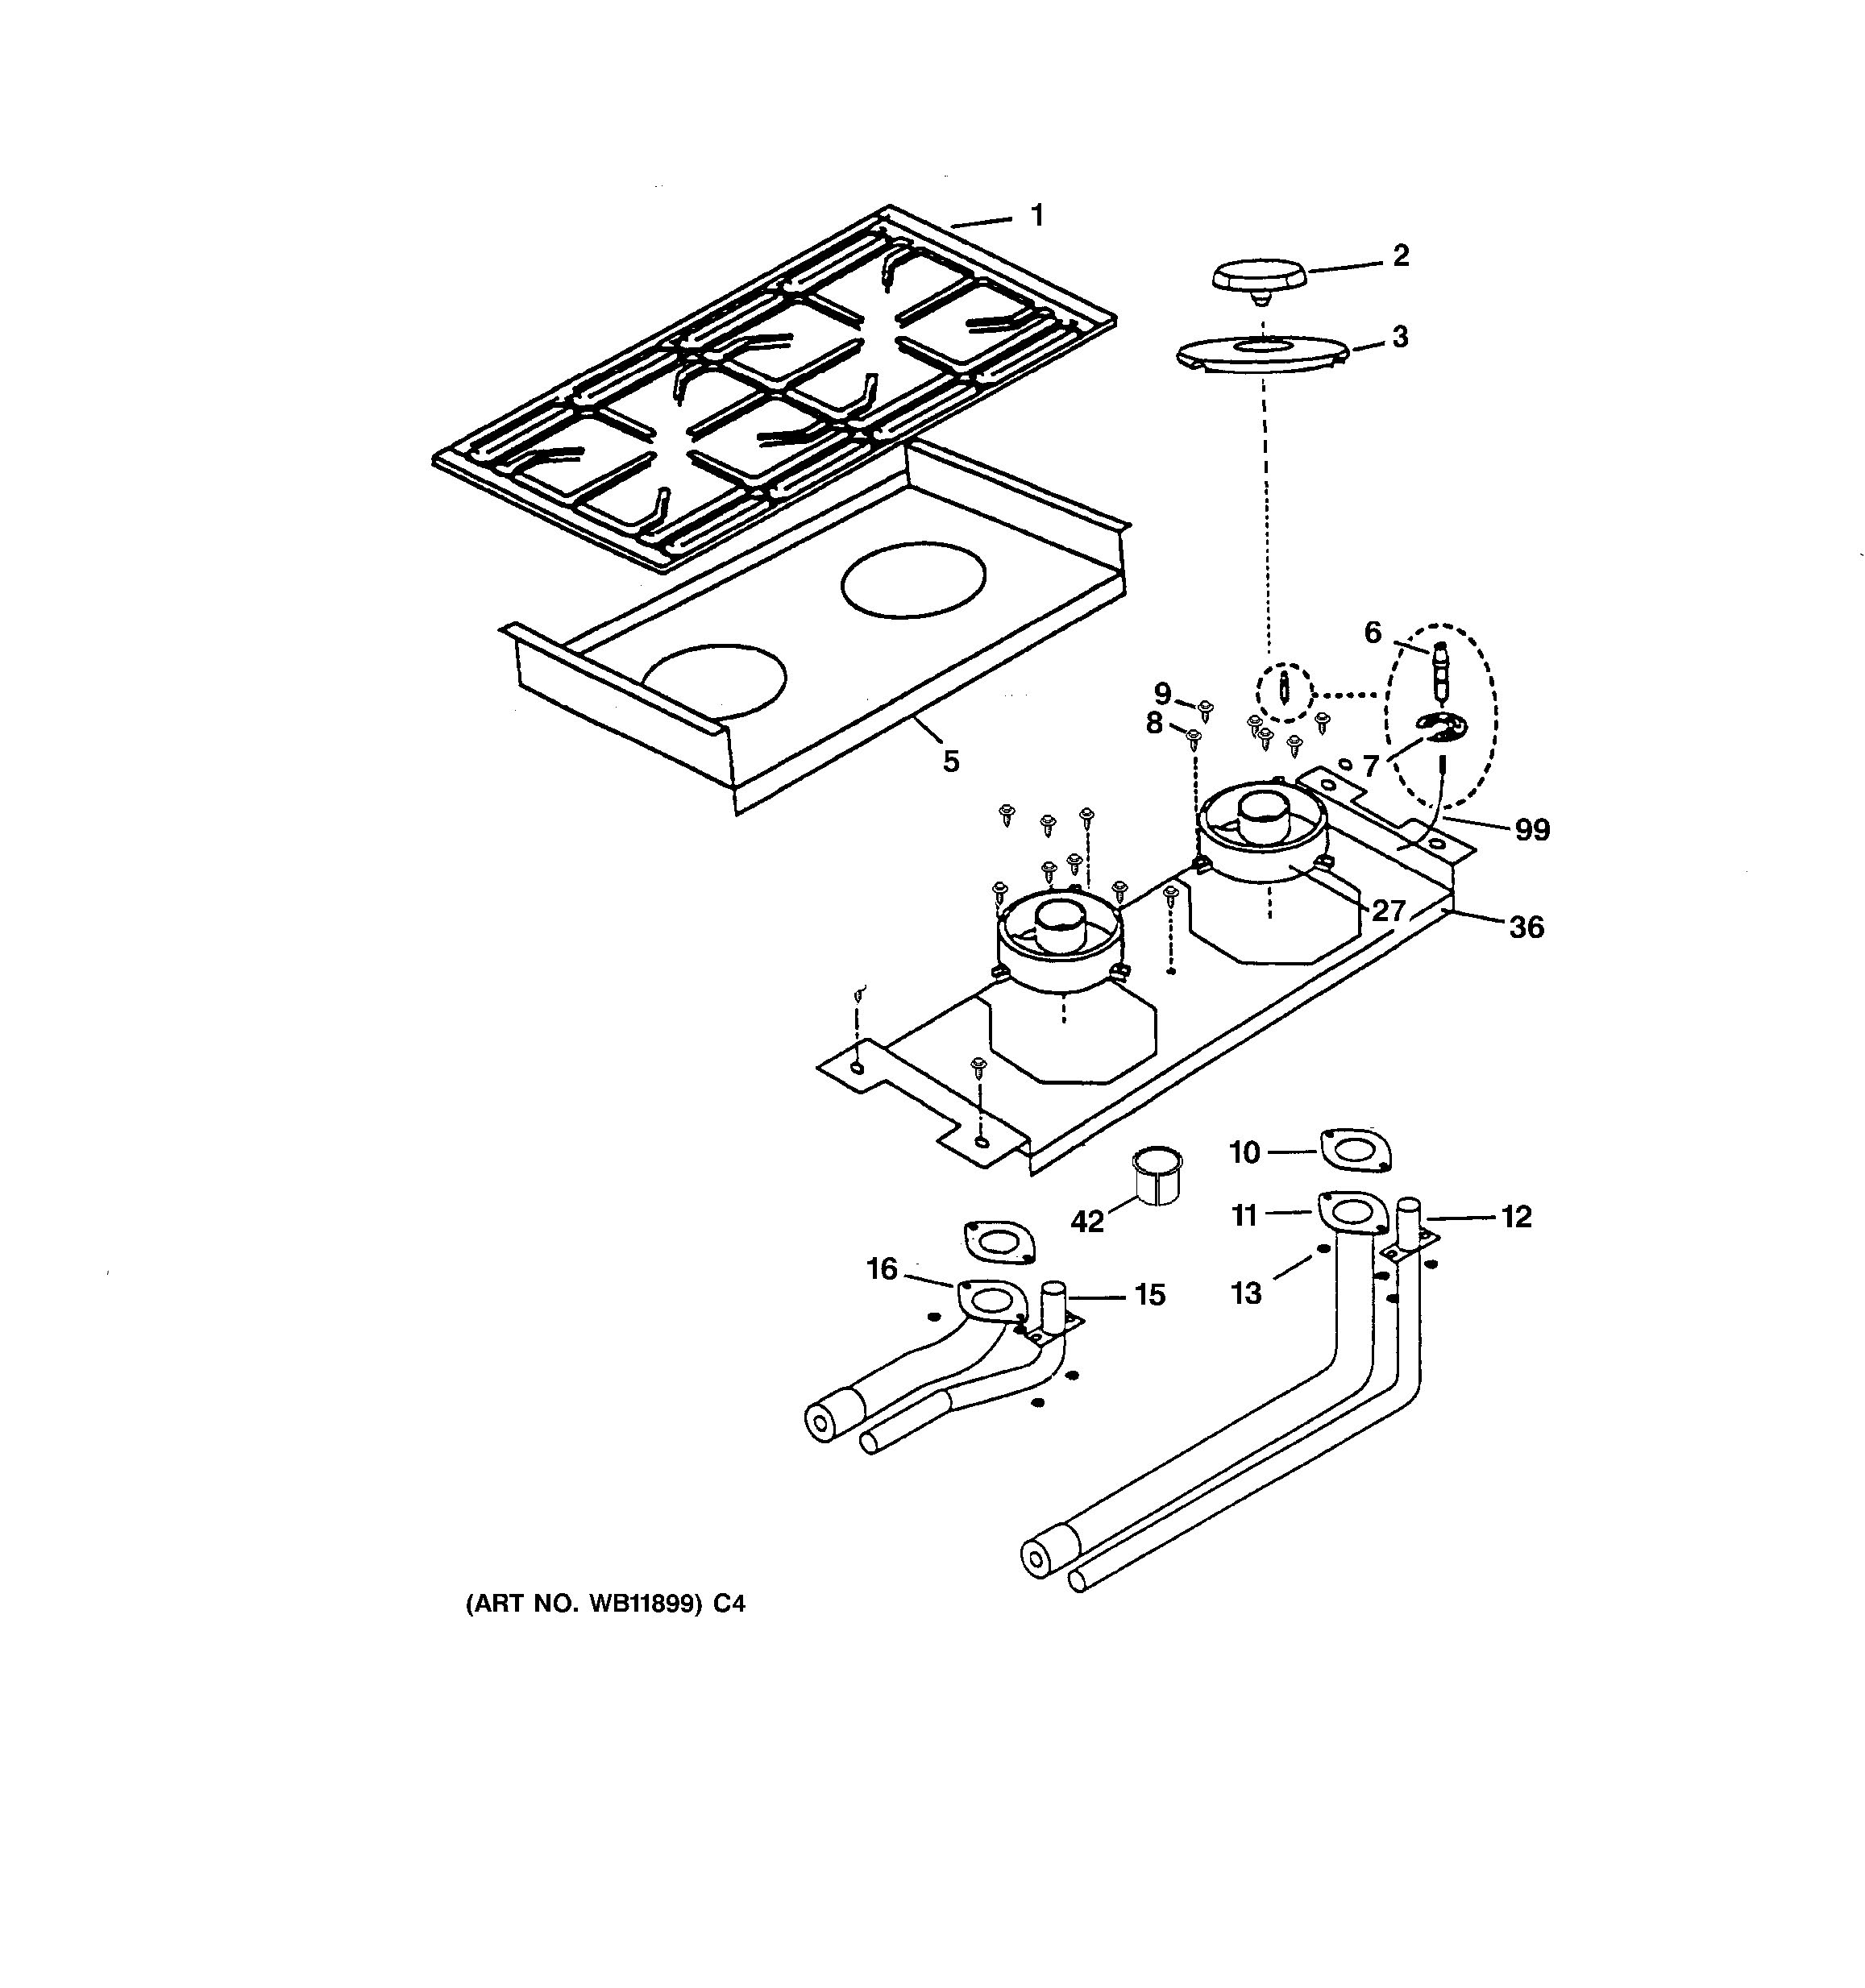 Assembly View For Burner Assembly